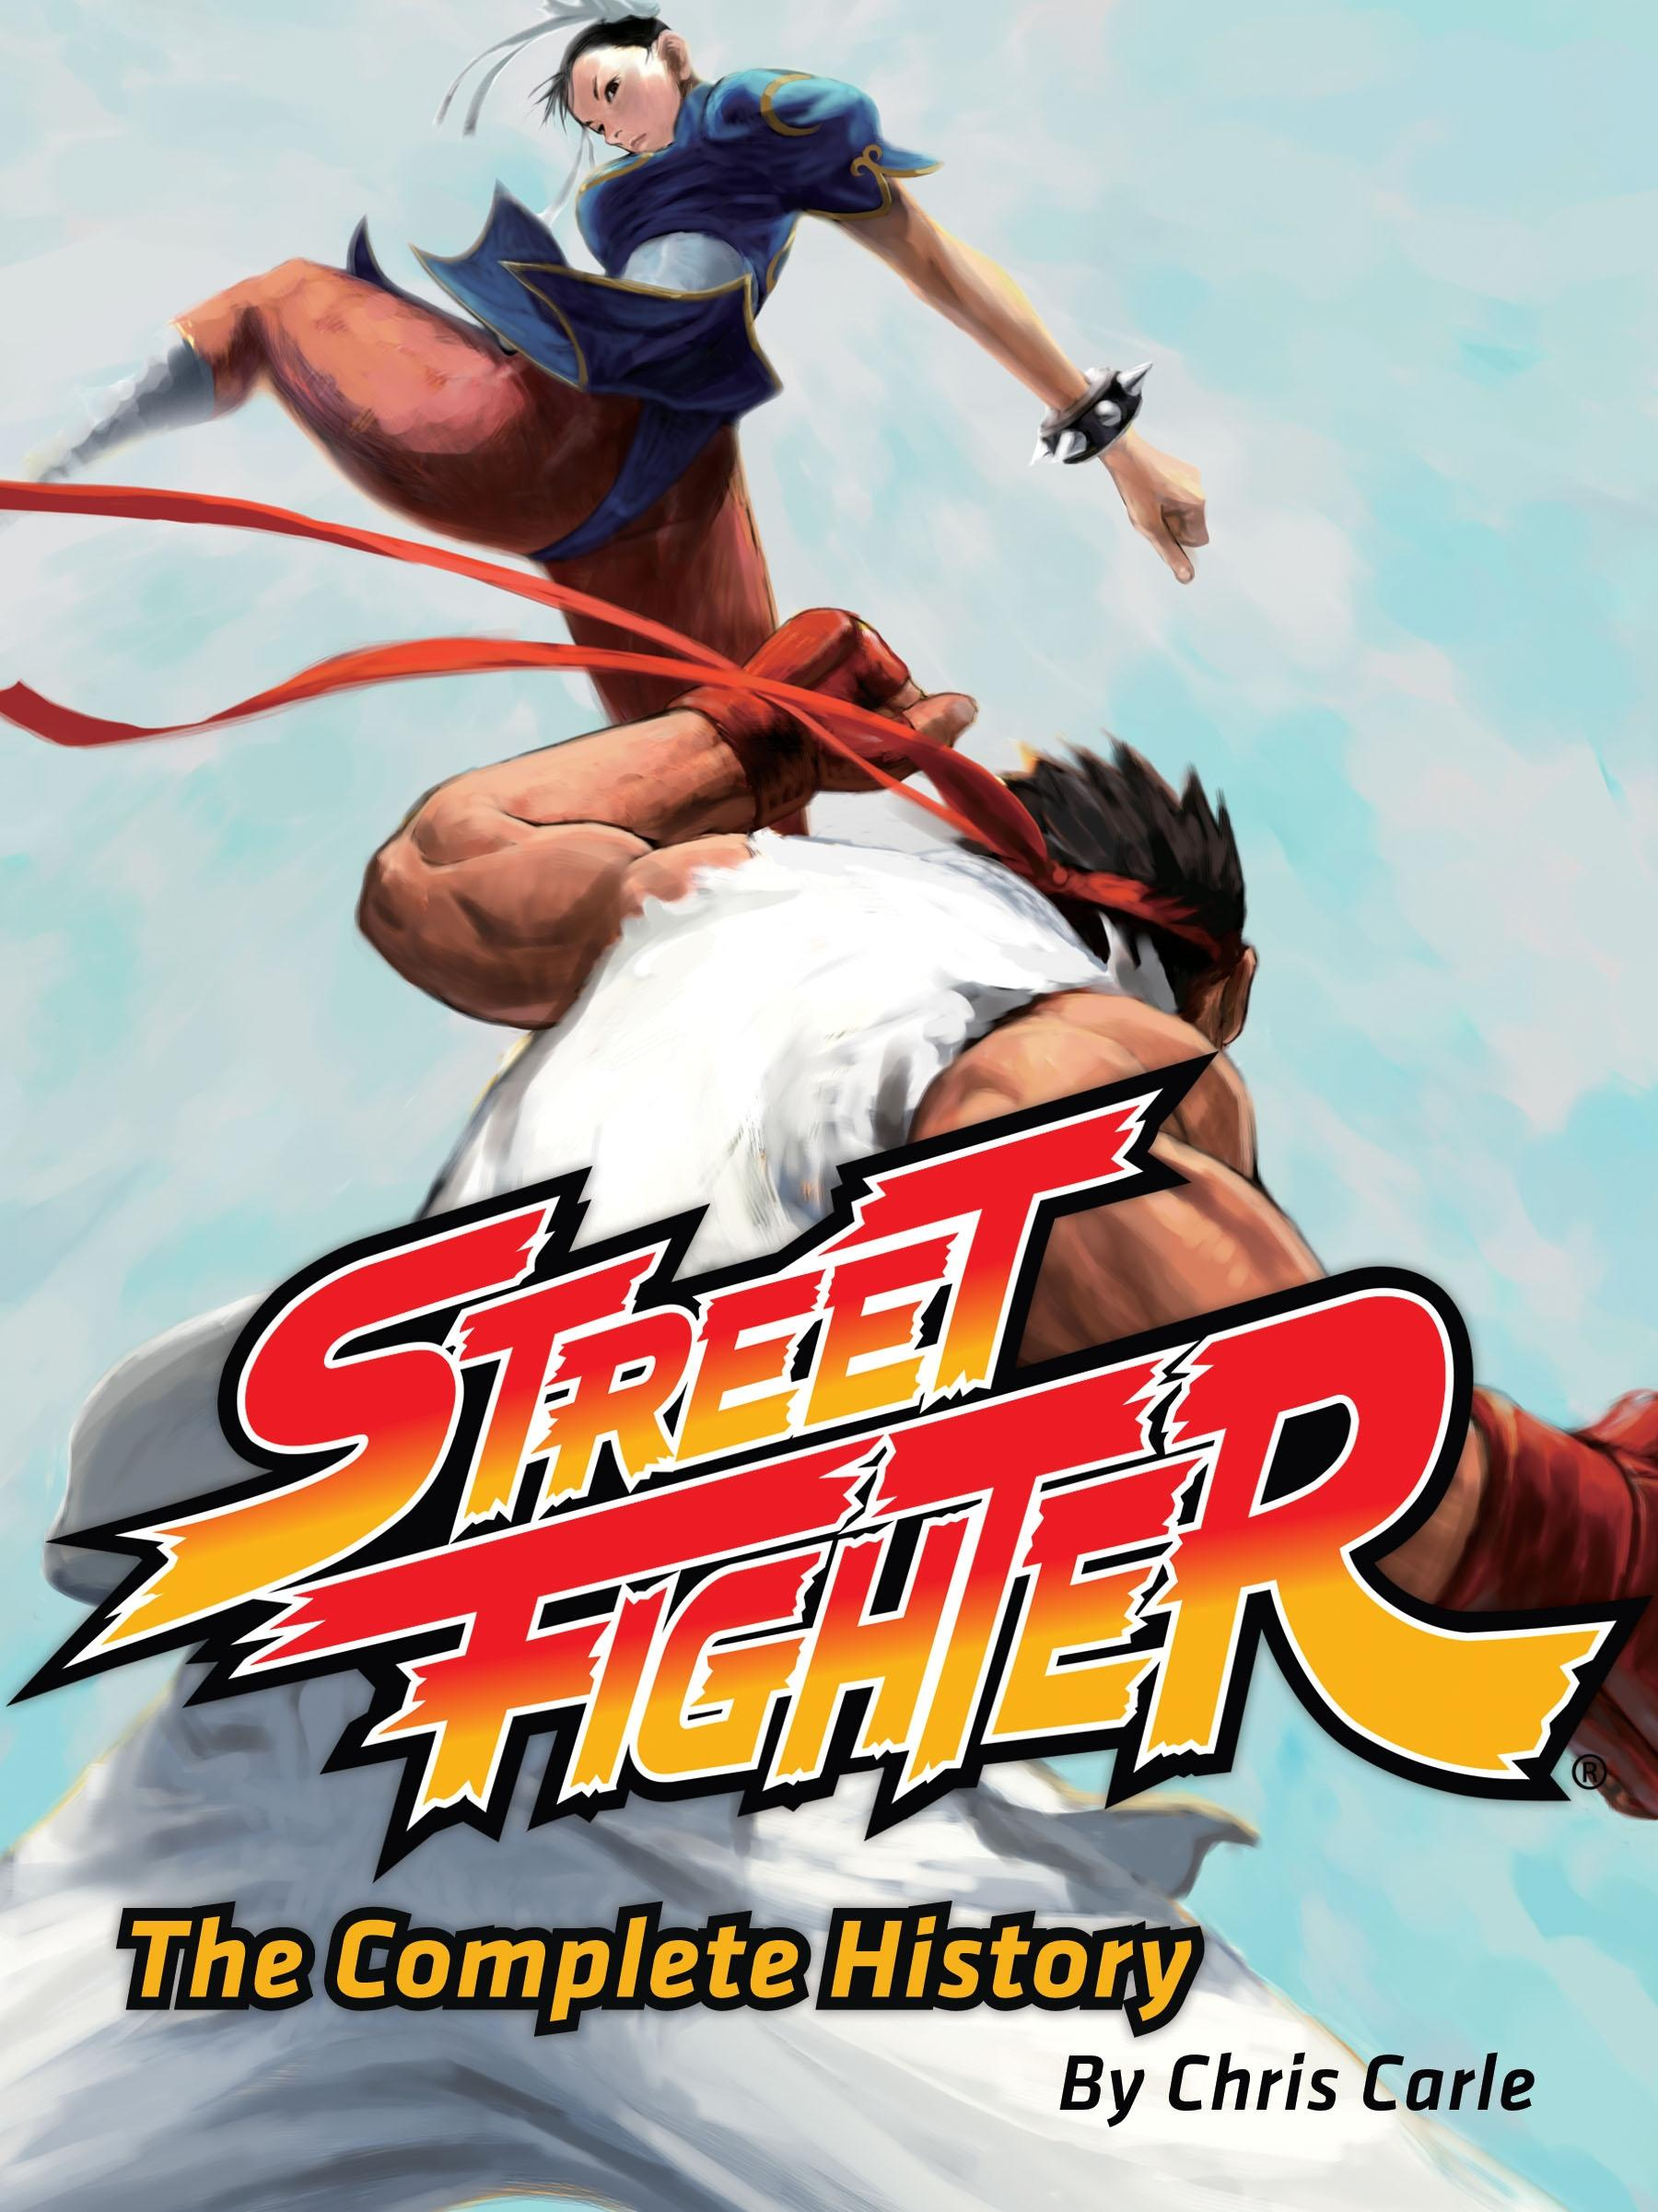 Book Review: Street Fighter: The Complete History by Chris Carle.